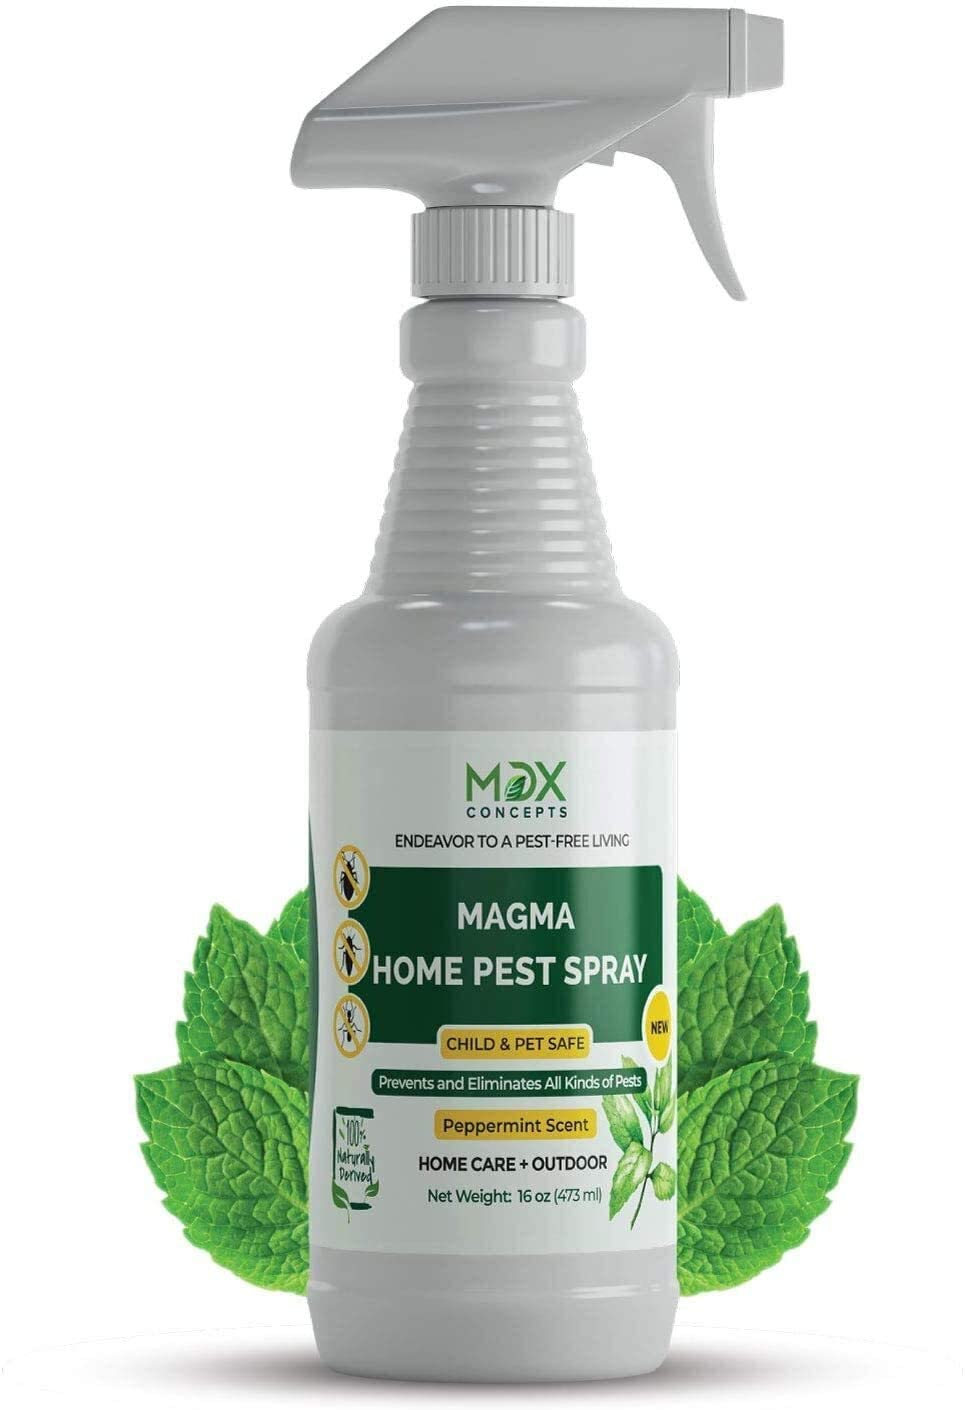 MDXconcepts Organic Home Pest Control & Roach Spray